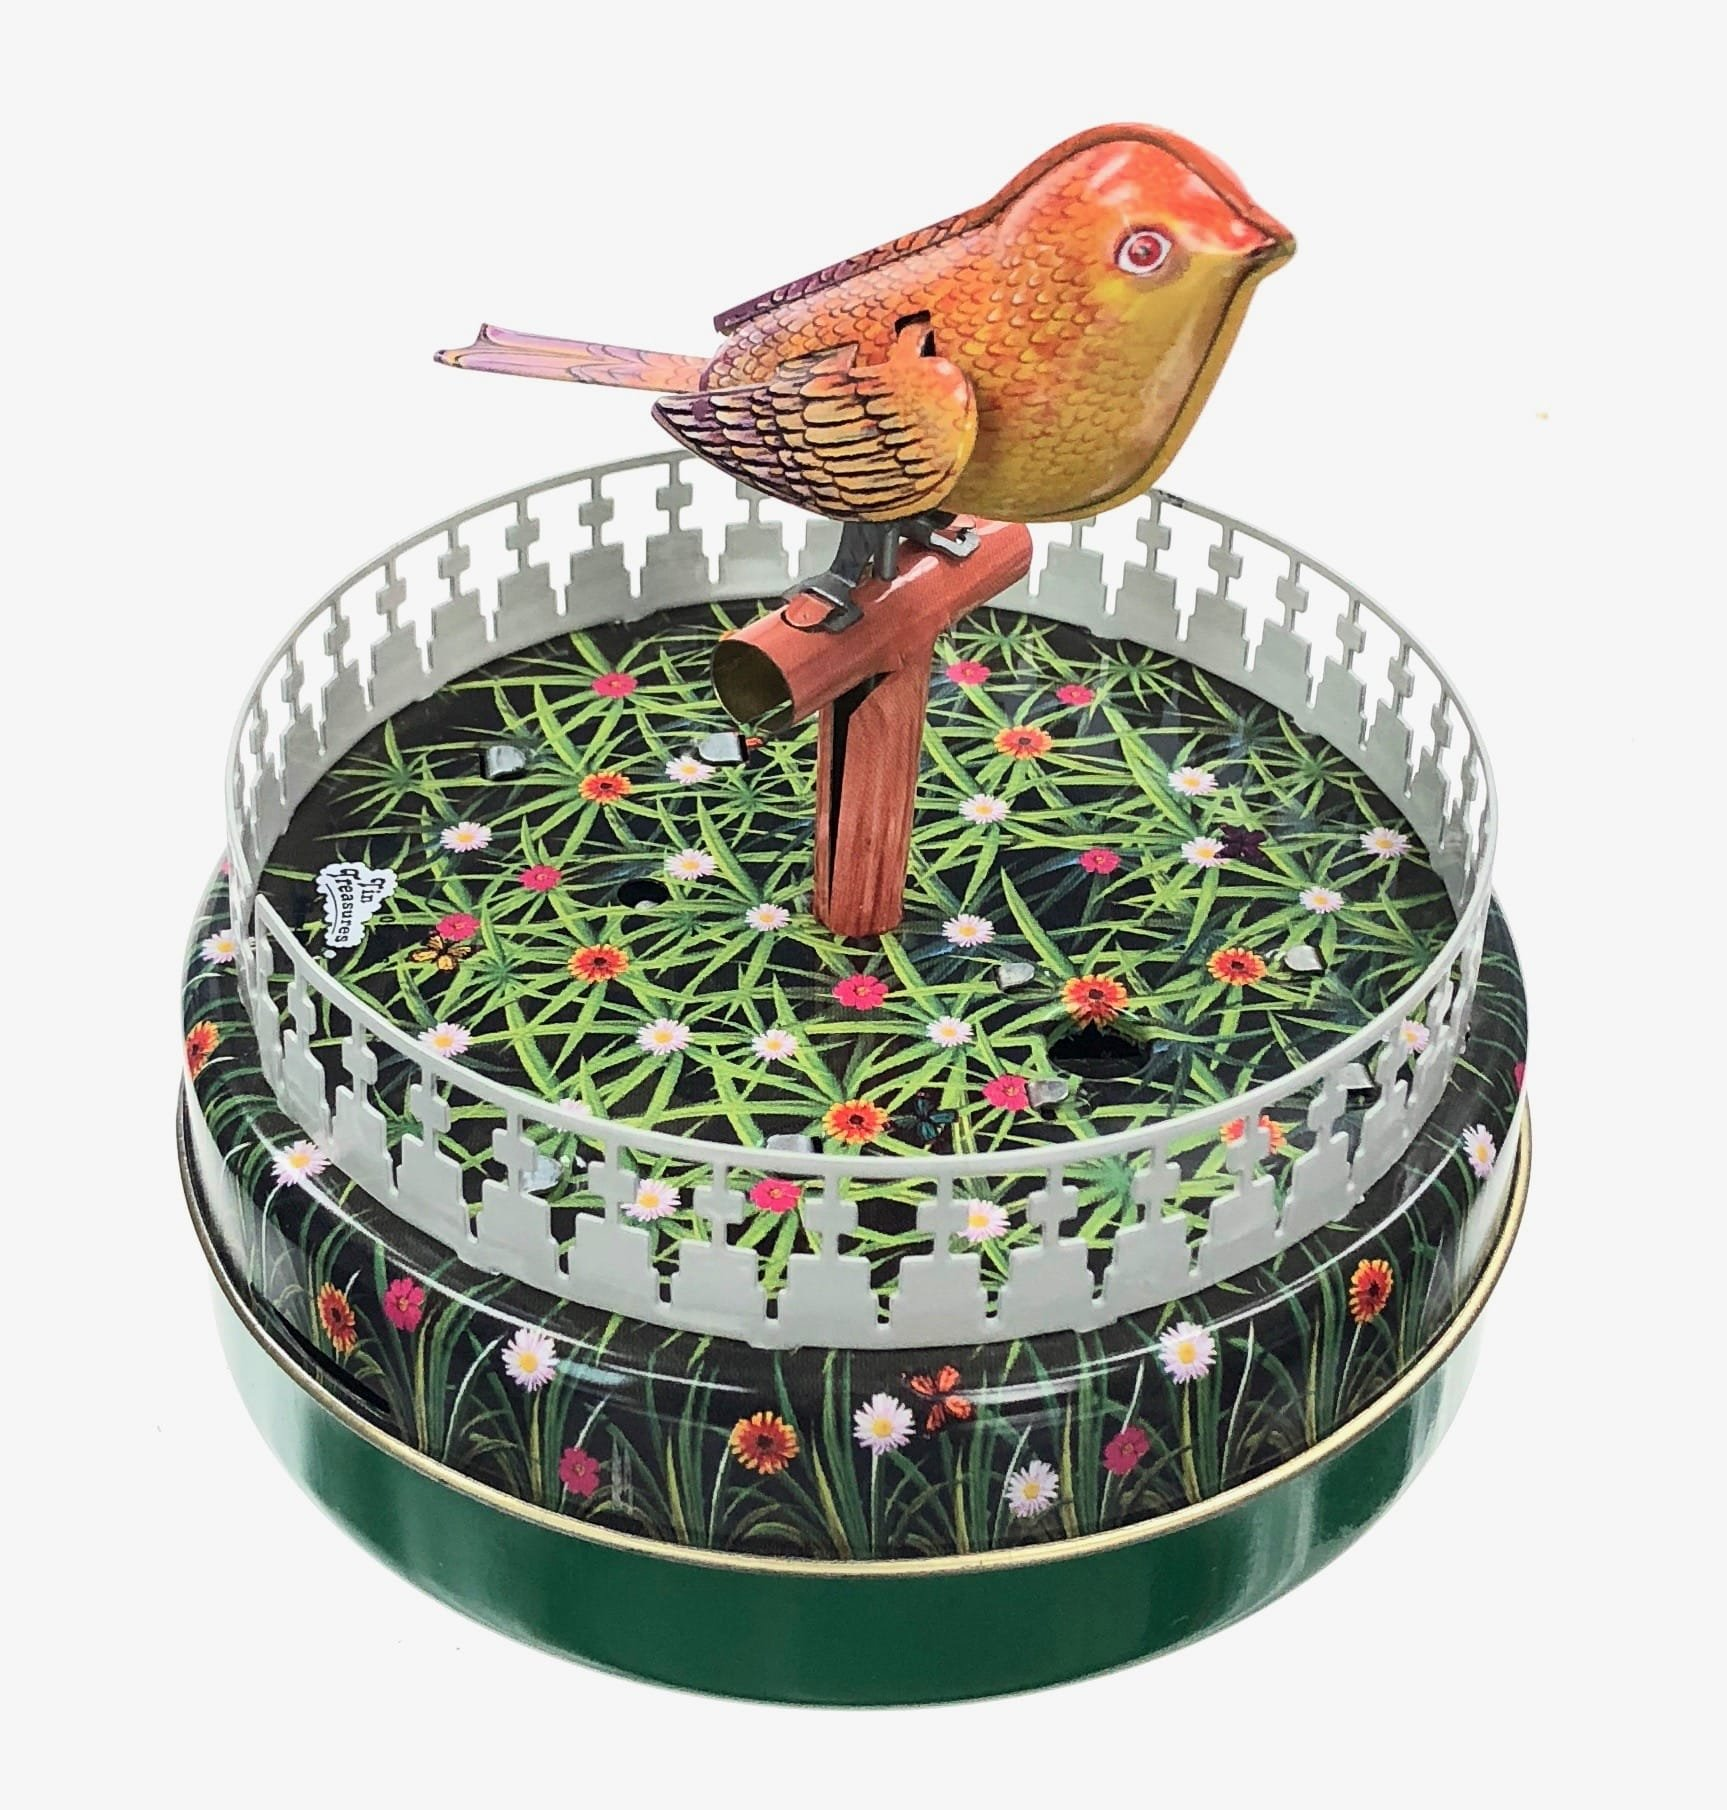 Chirping Bird Animated with Sounds Windup Tin Toy Collectible